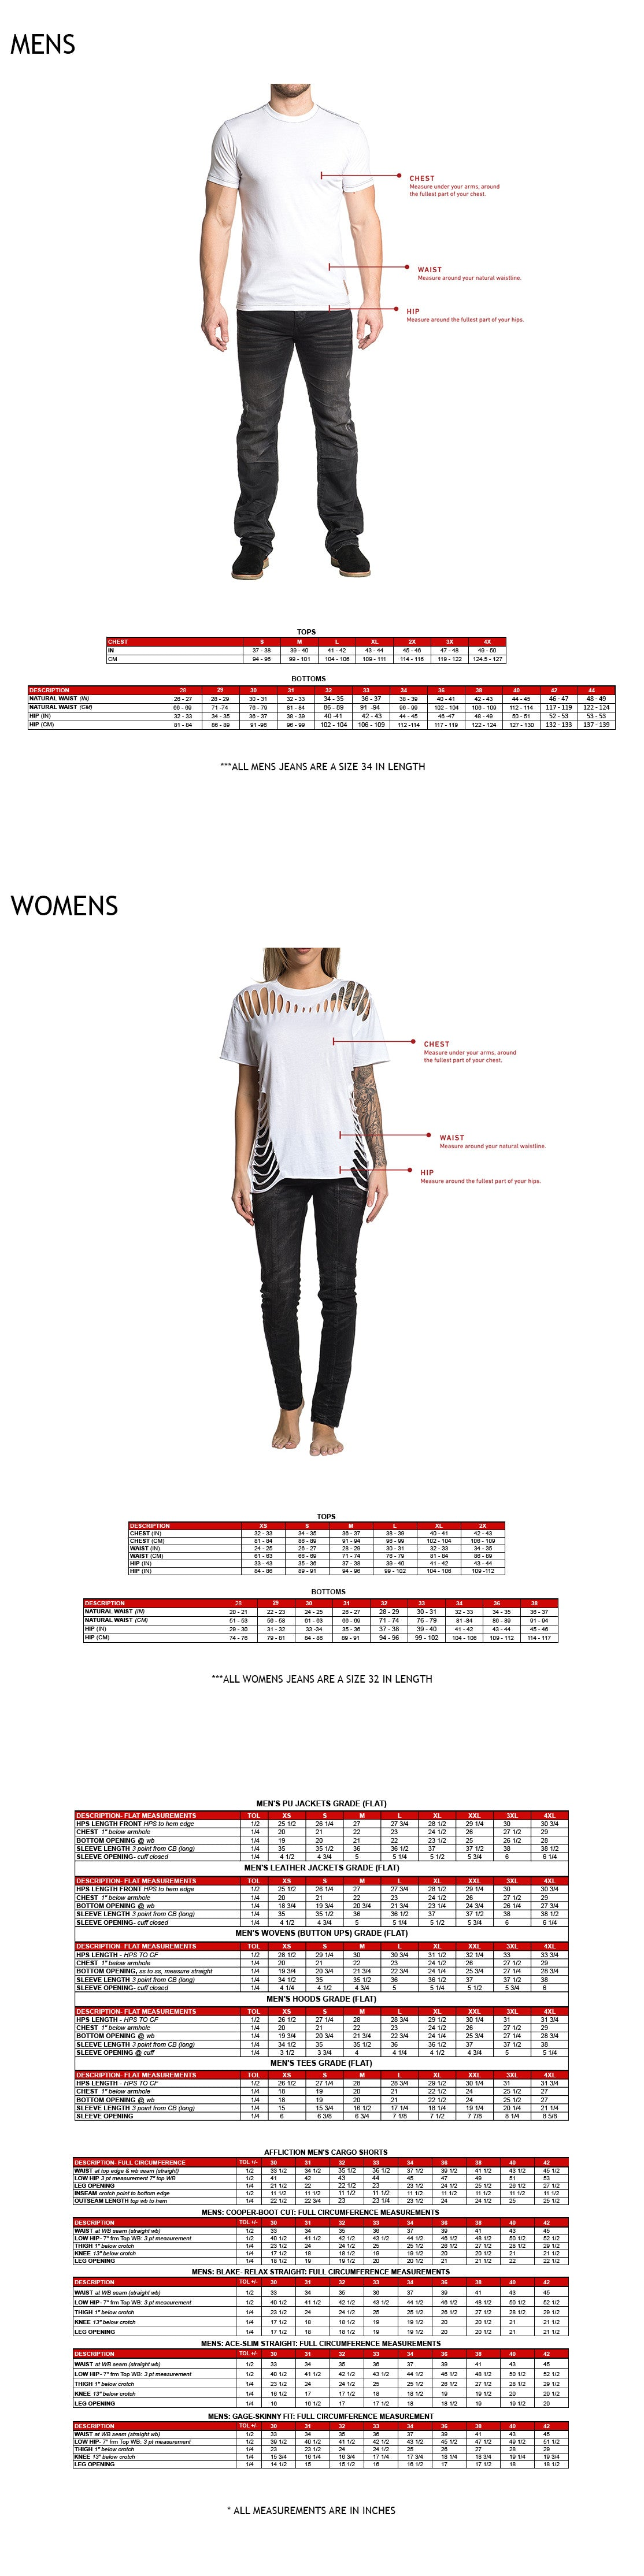 size and garment spec chart